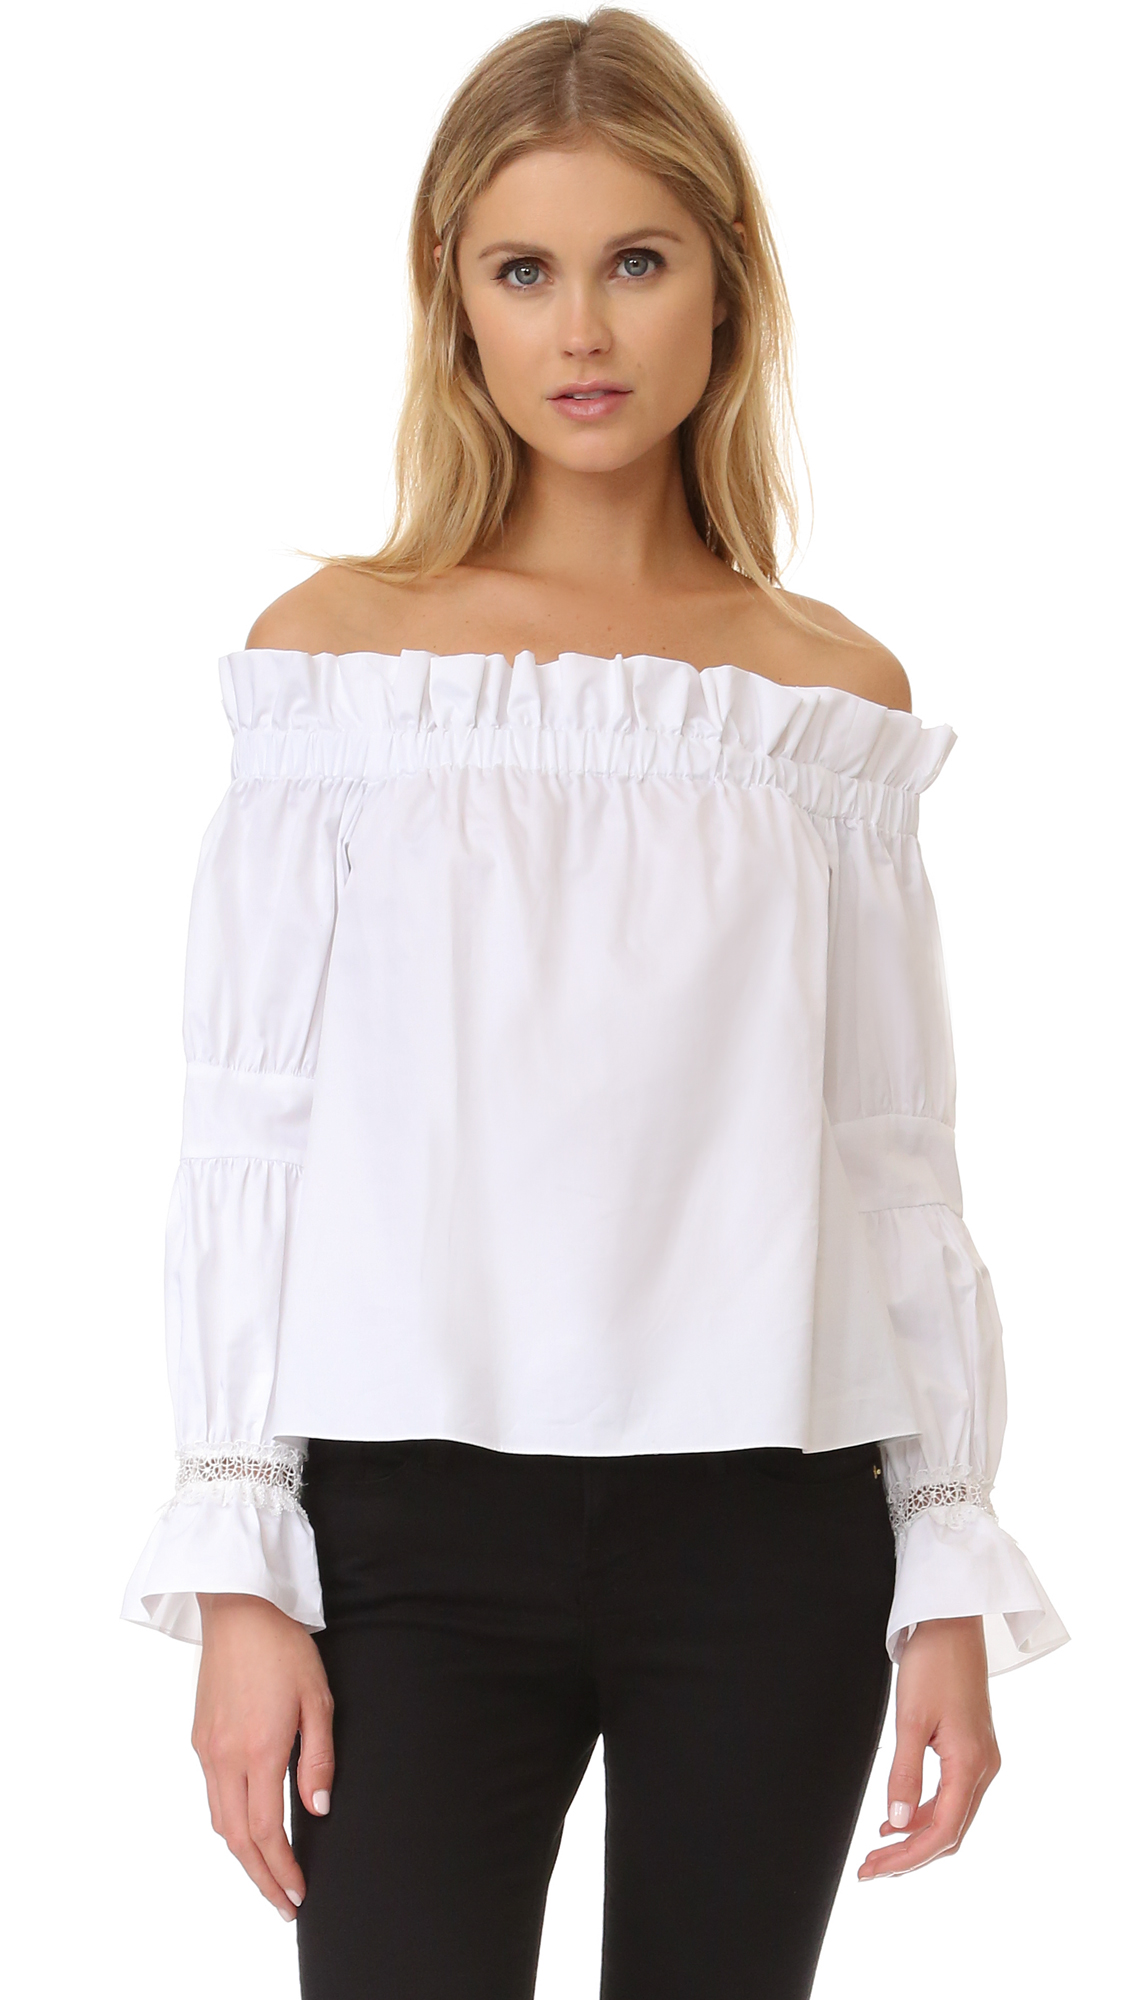 An off shoulder Alexis top with ruffled edges and crochet trim. Long blouson sleeves. Fabric: Sateen. 100% cotton. Dry clean. Imported, China. Measurements Length: 17.75in / 45cm, from center back Measurements from size S. Available sizes: M